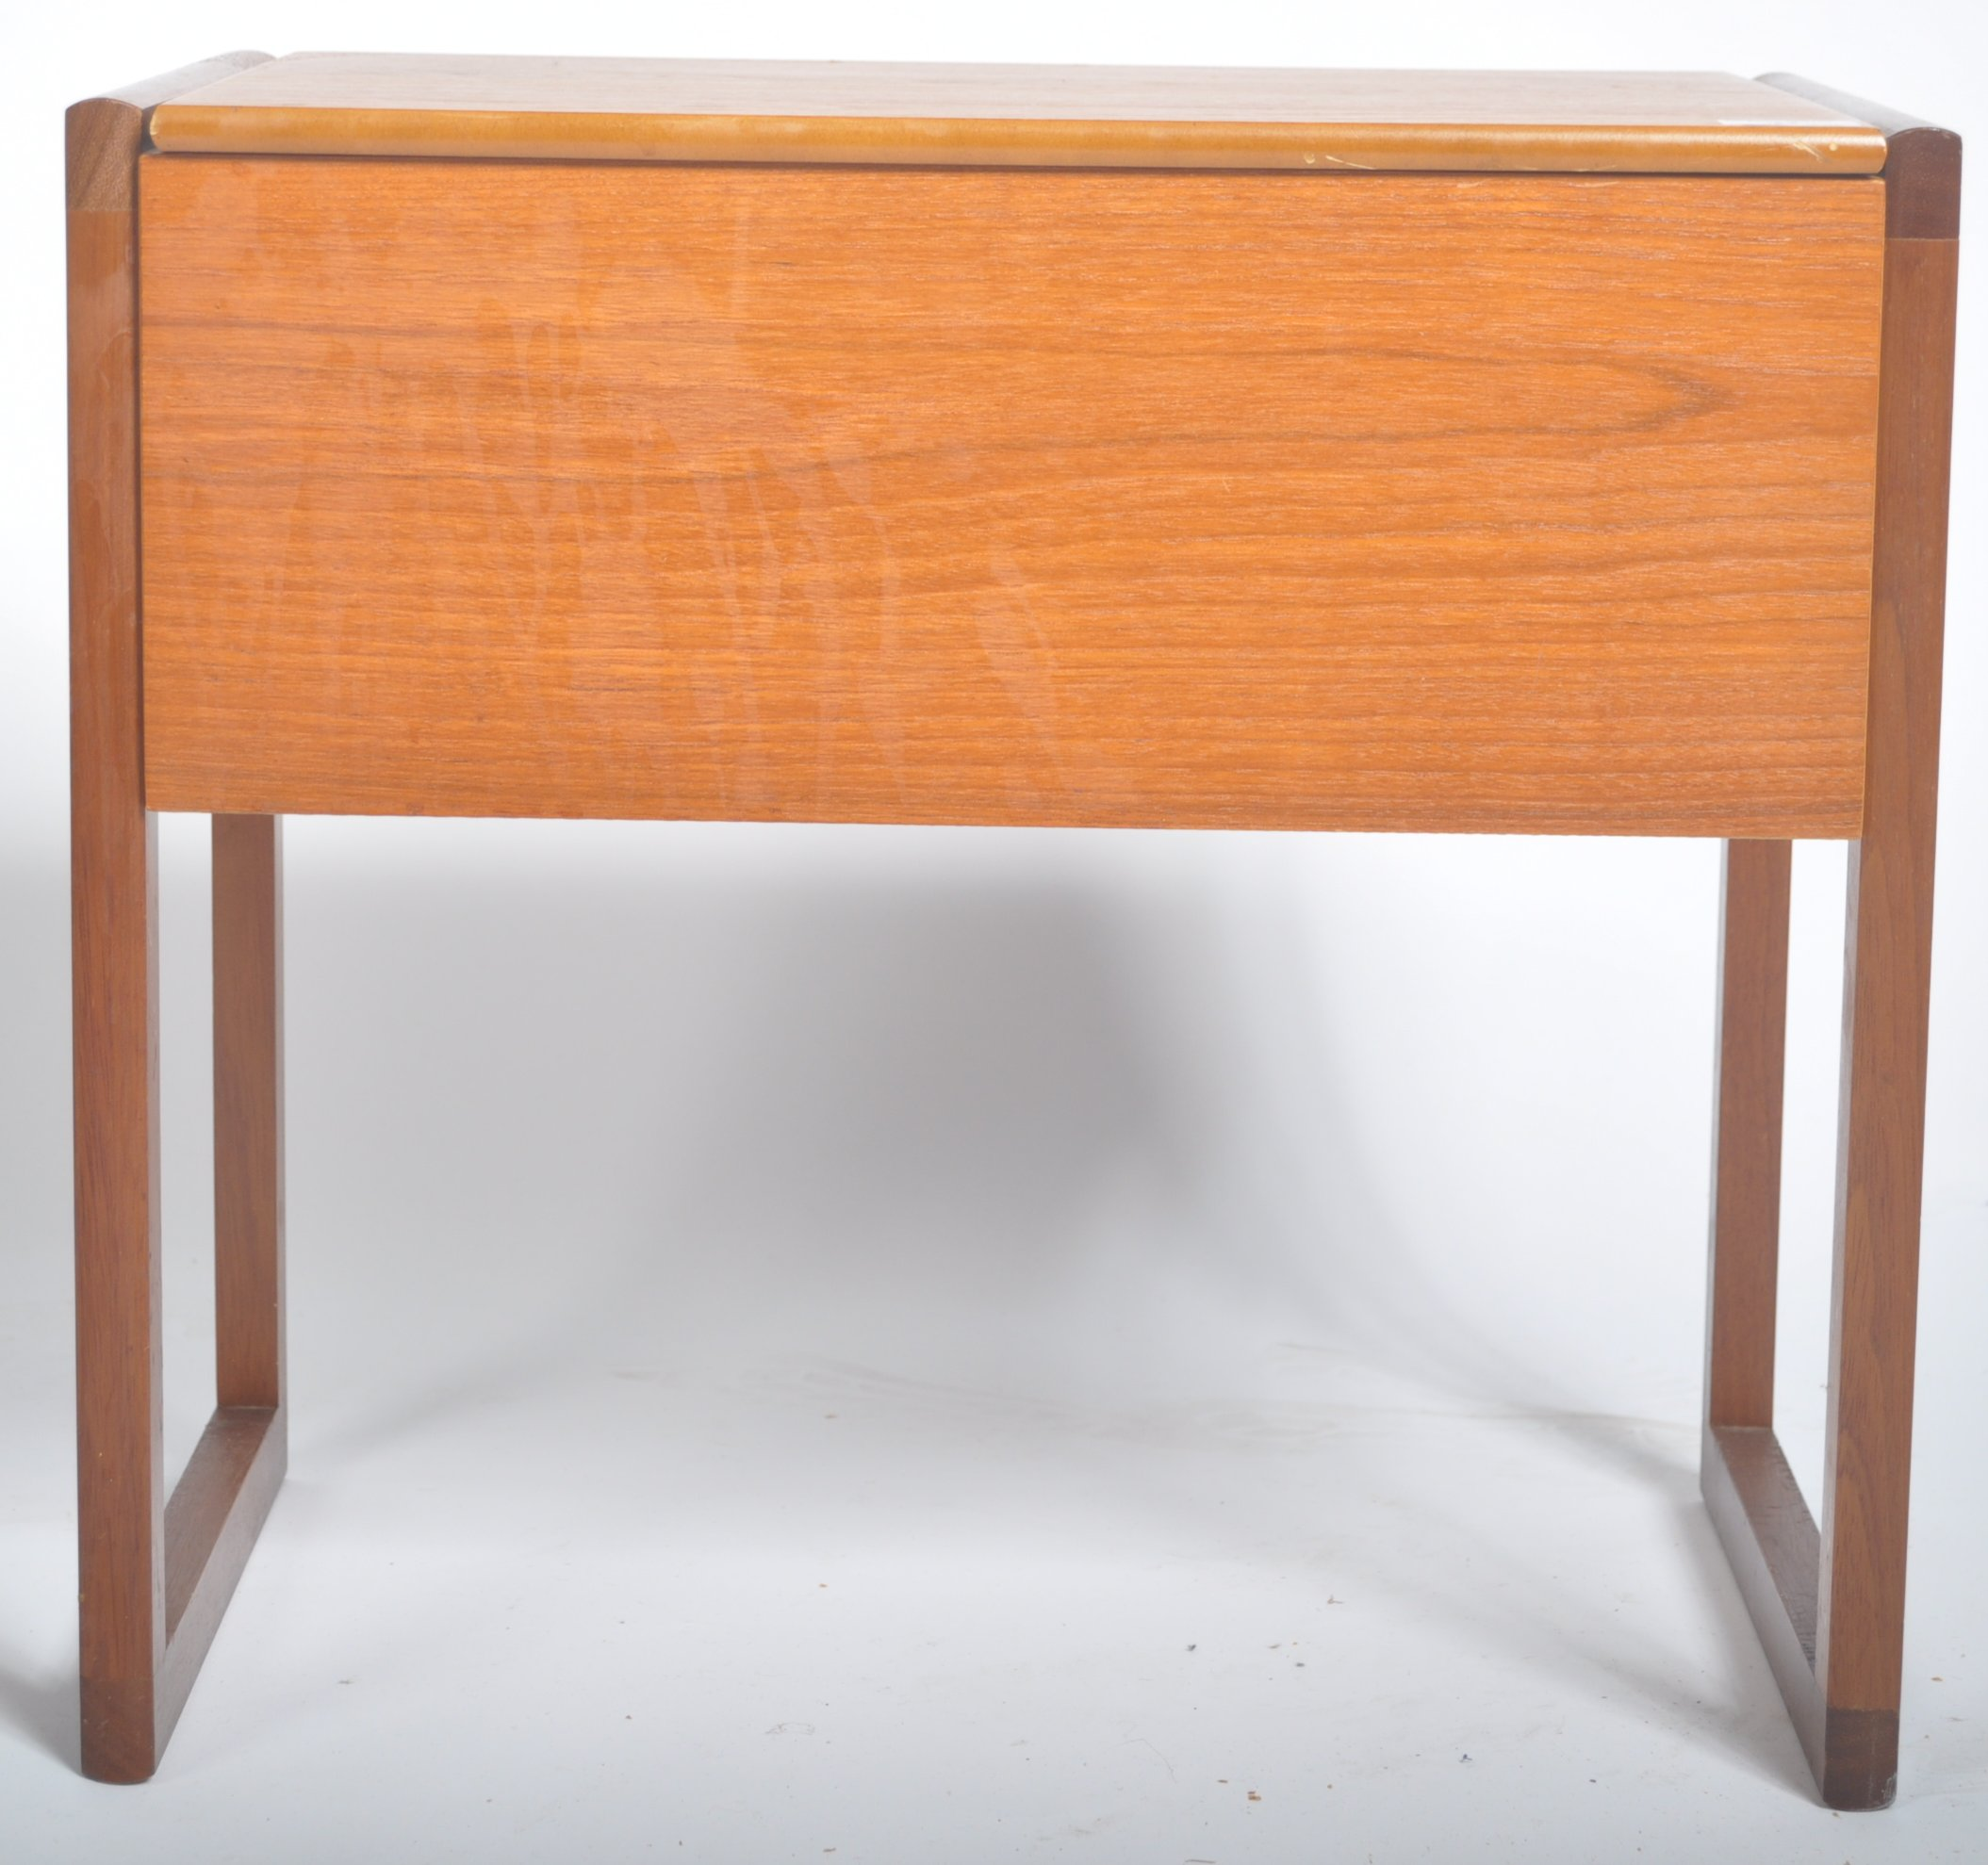 Lot 37 - REX FURNITURE MID CENTURY SEWING WORK BOX STOOL OF SQUARE FORM